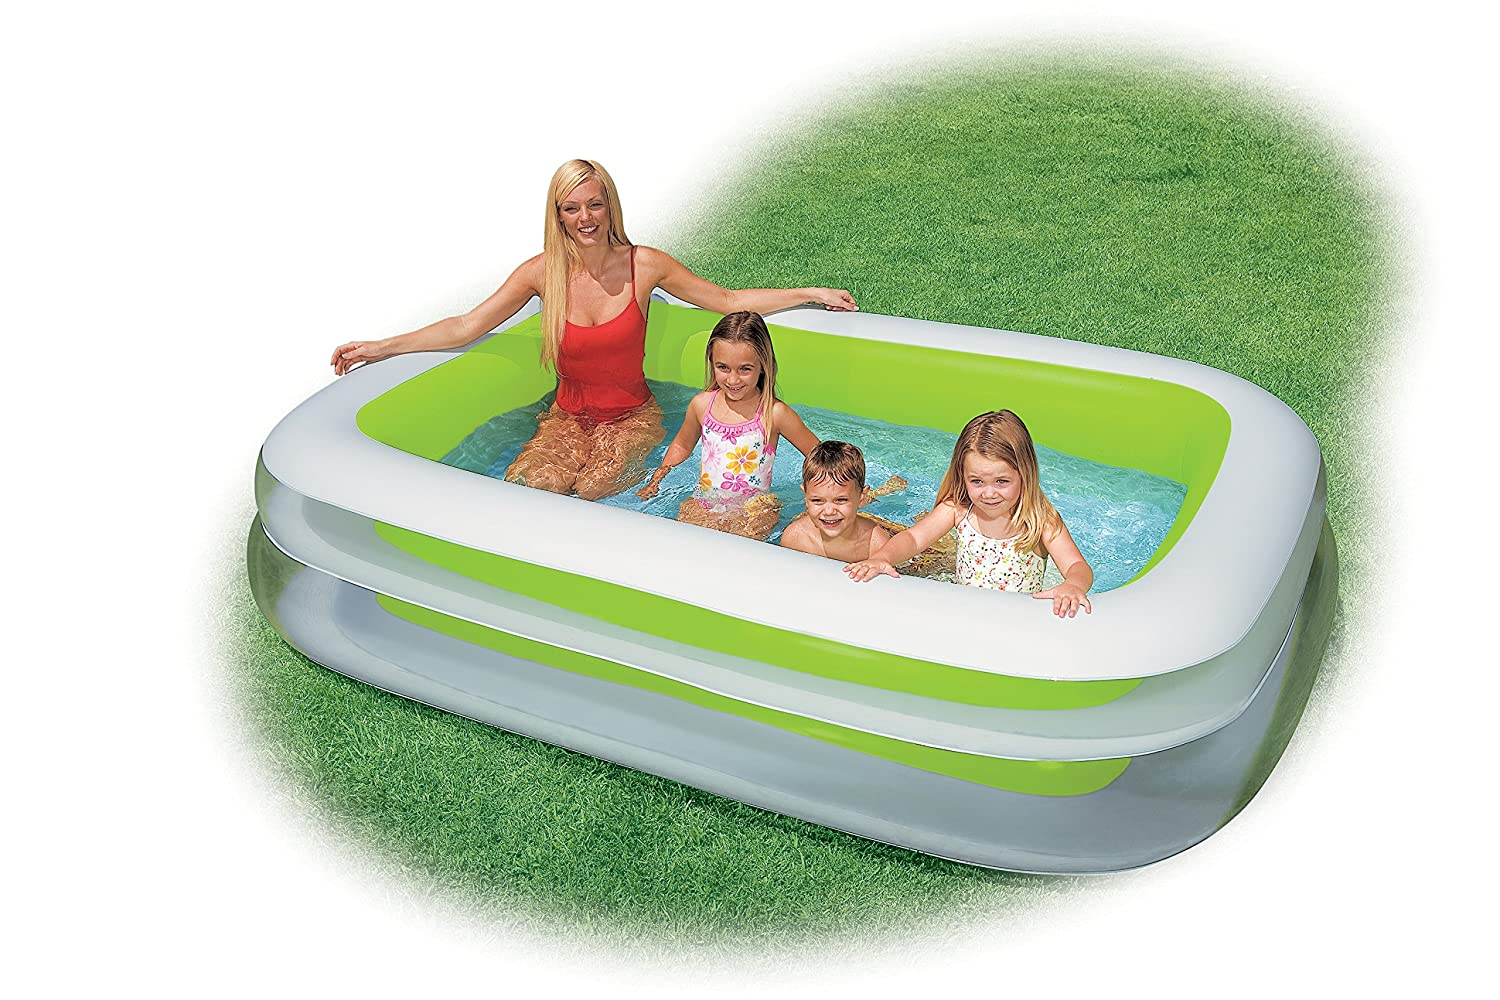 Intex swim center family inflatable pool 103 x 69 x 22 for Intex pool handler